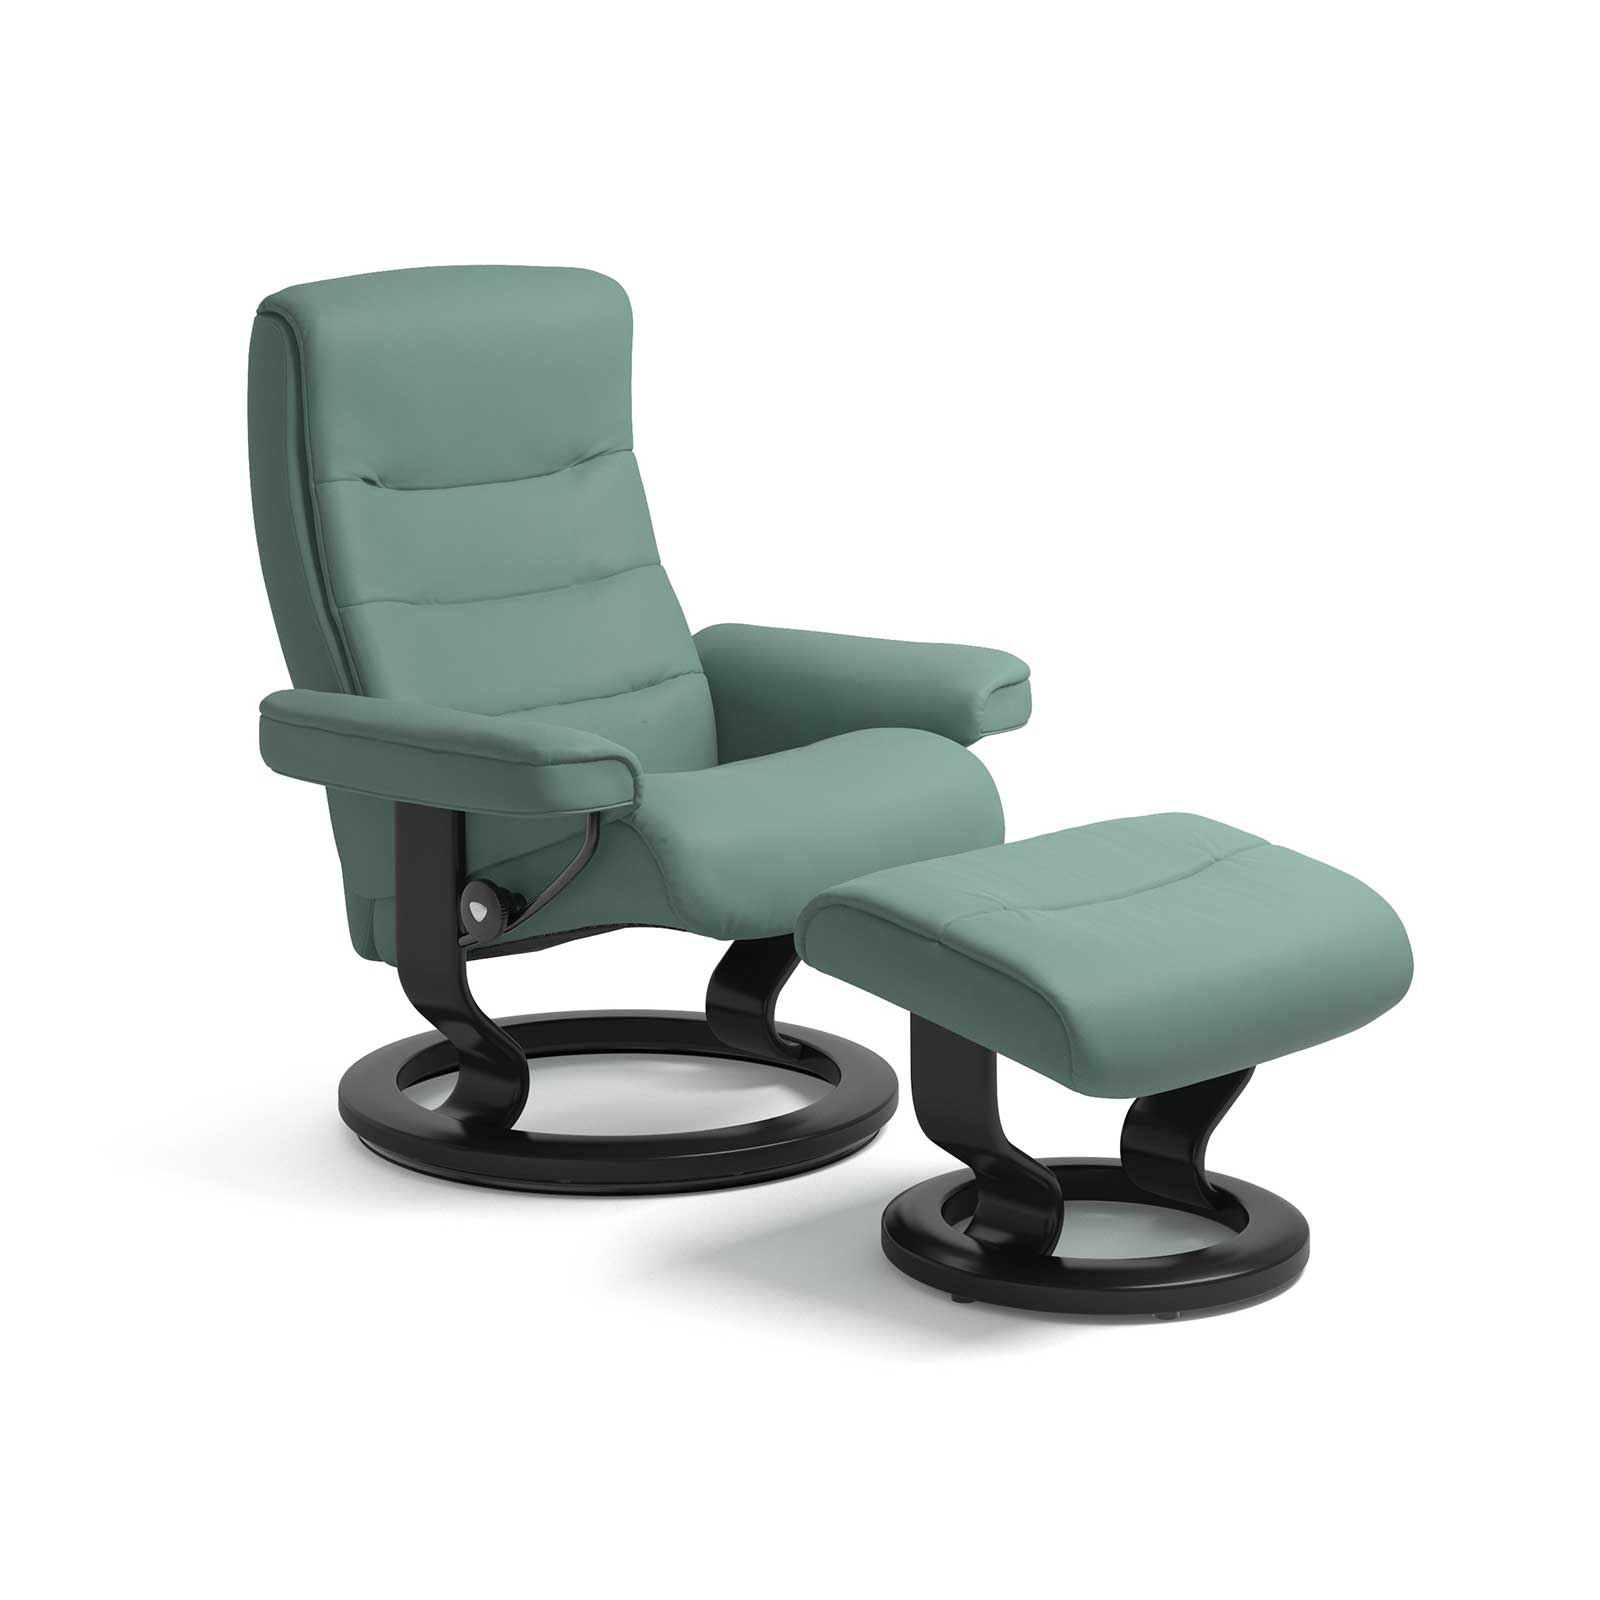 Stressless Sessel Jazz Stressless Sessel Grün Zuhause Image Ideas